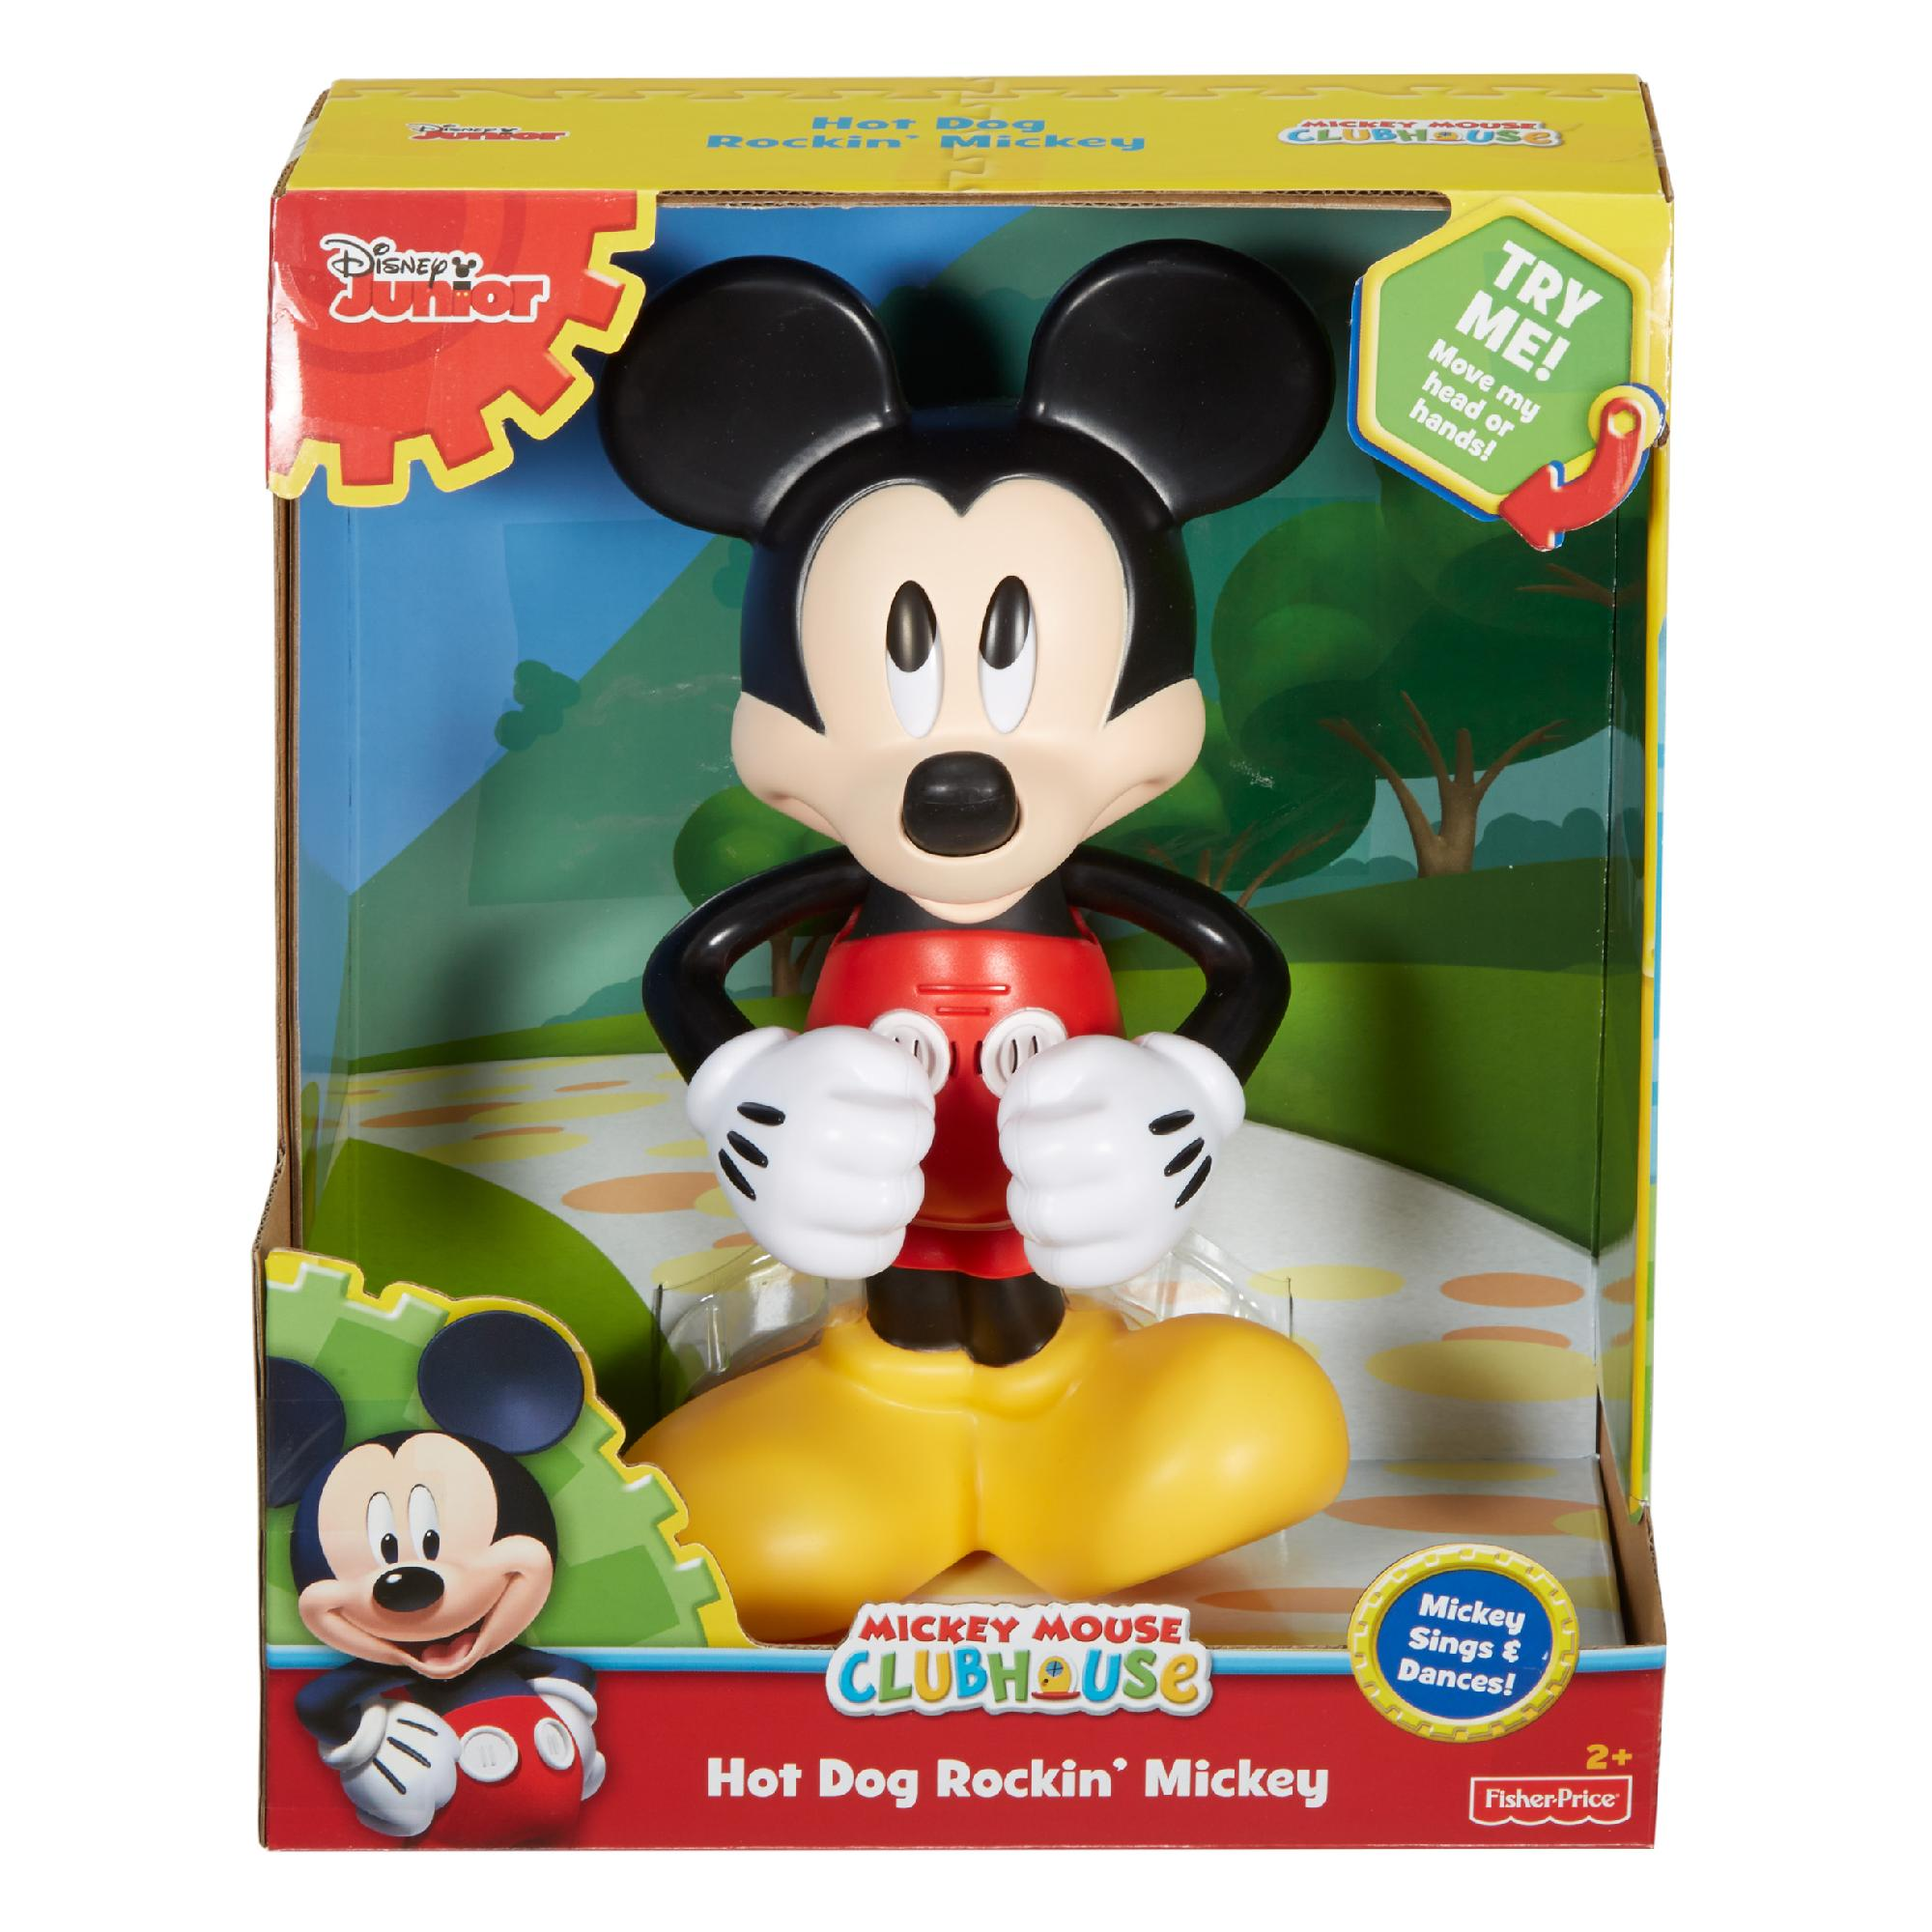 Disney Mickey Mouse Clubhouse Hot Dog Rockin Mickey Walmart